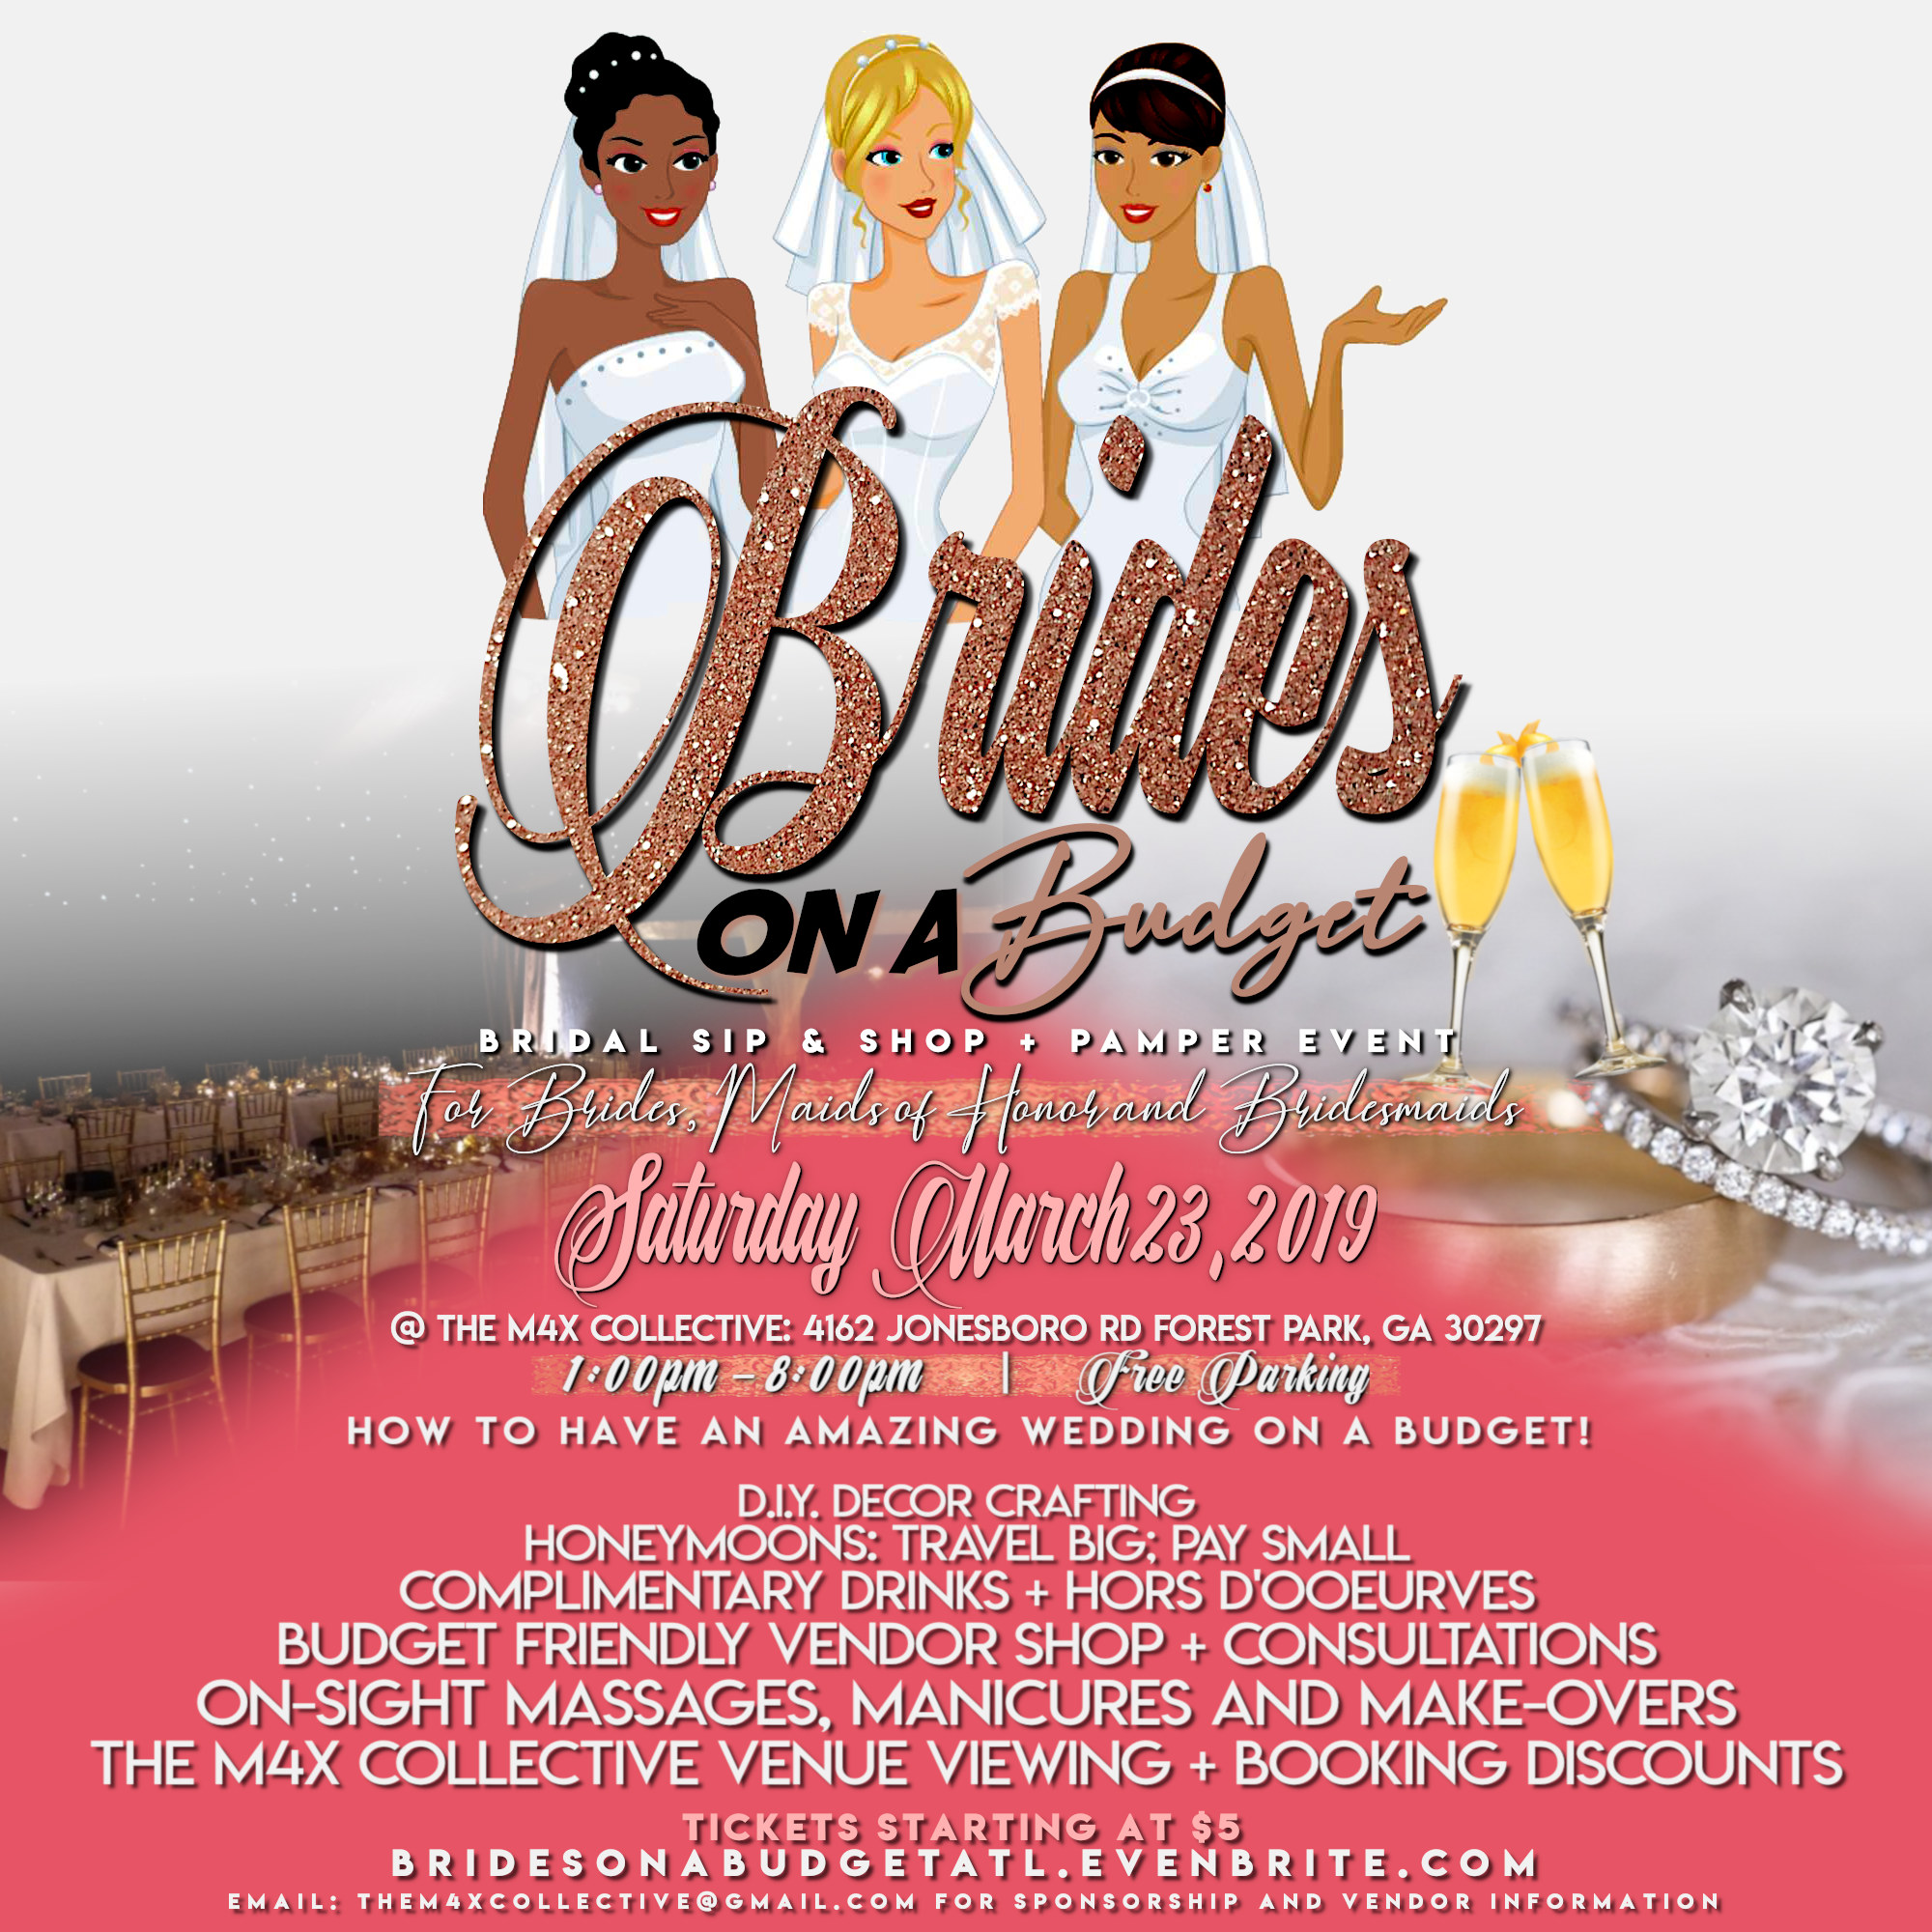 Brides On A Budget Bridal Sip Shop Refreshments Pampering